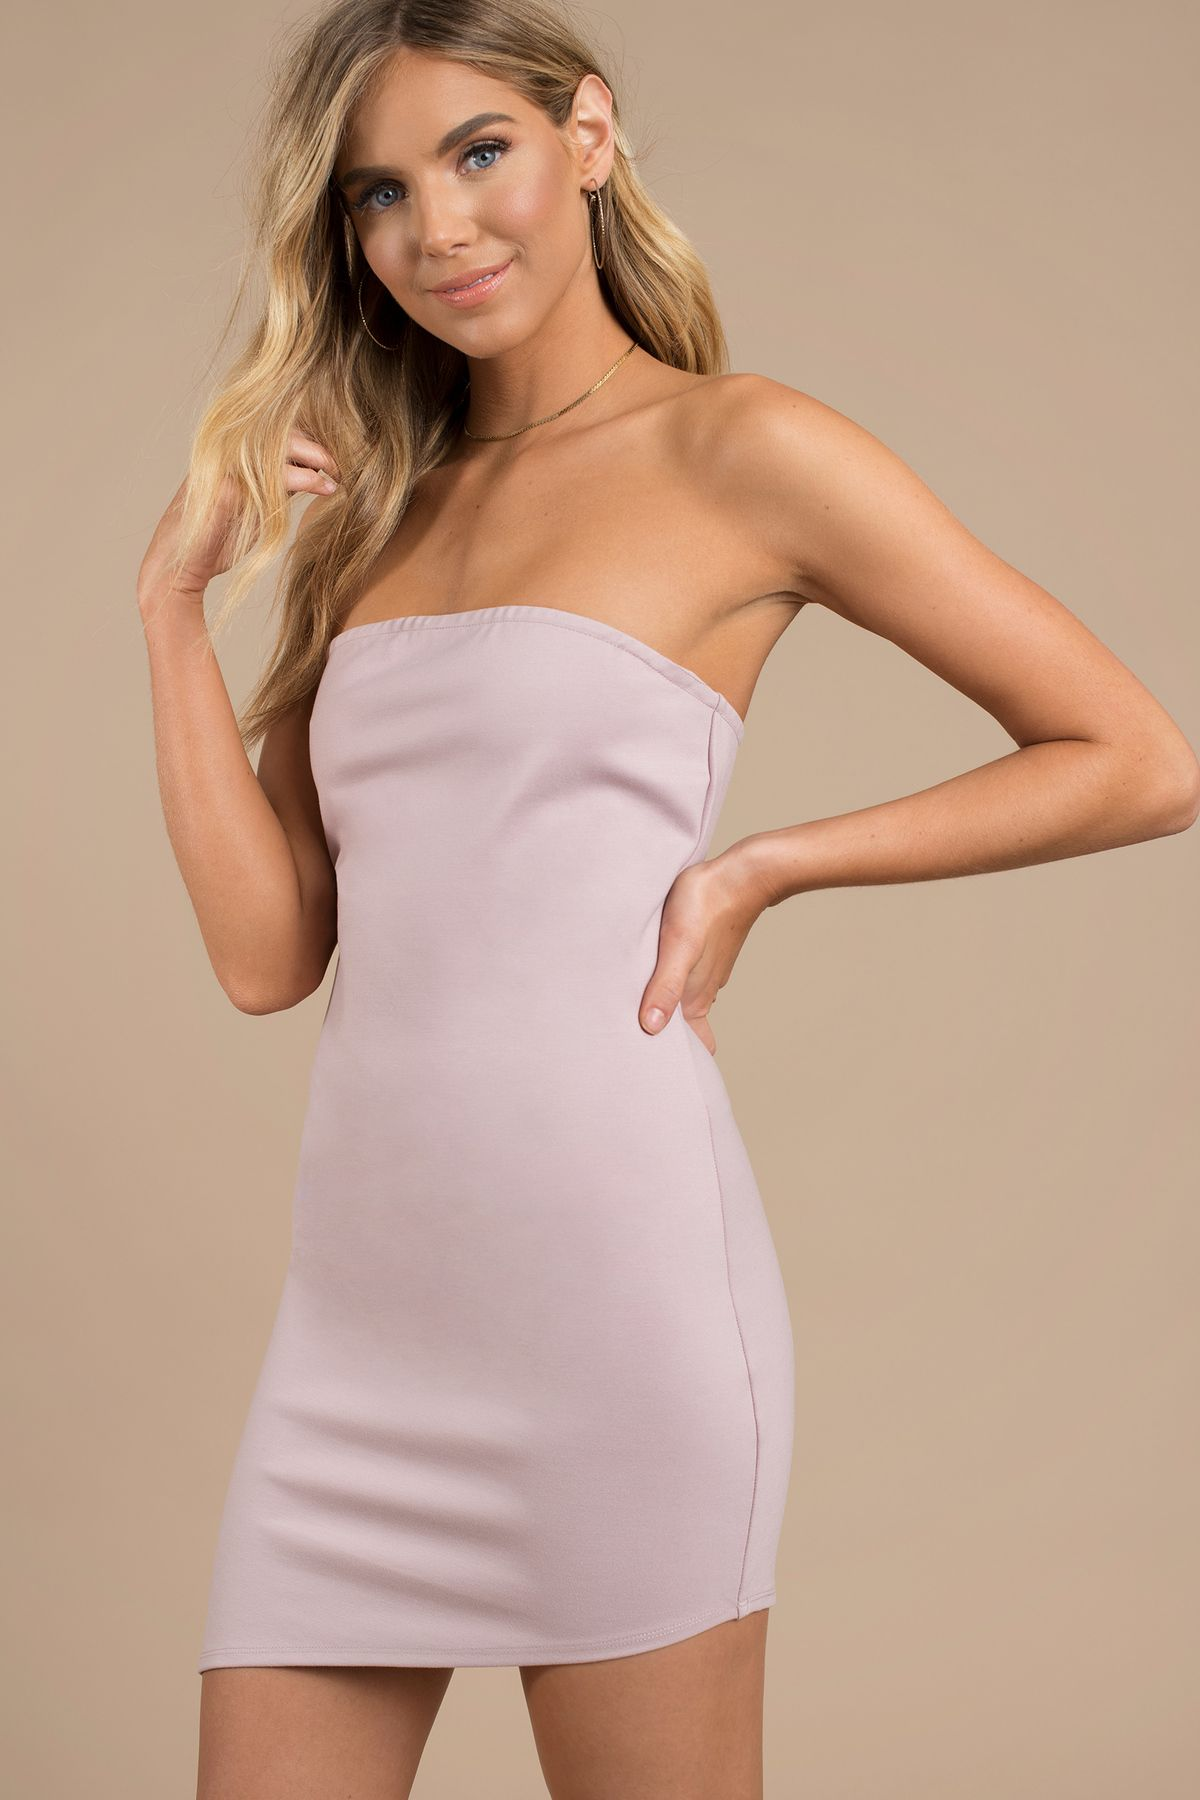 Side To Side Strapless Bodycon Dress In Mauve In 2021 Strapless Bodycon Dress Purple Bodycon Dresses Lace Up Bodycon Dress [ 1800 x 1200 Pixel ]